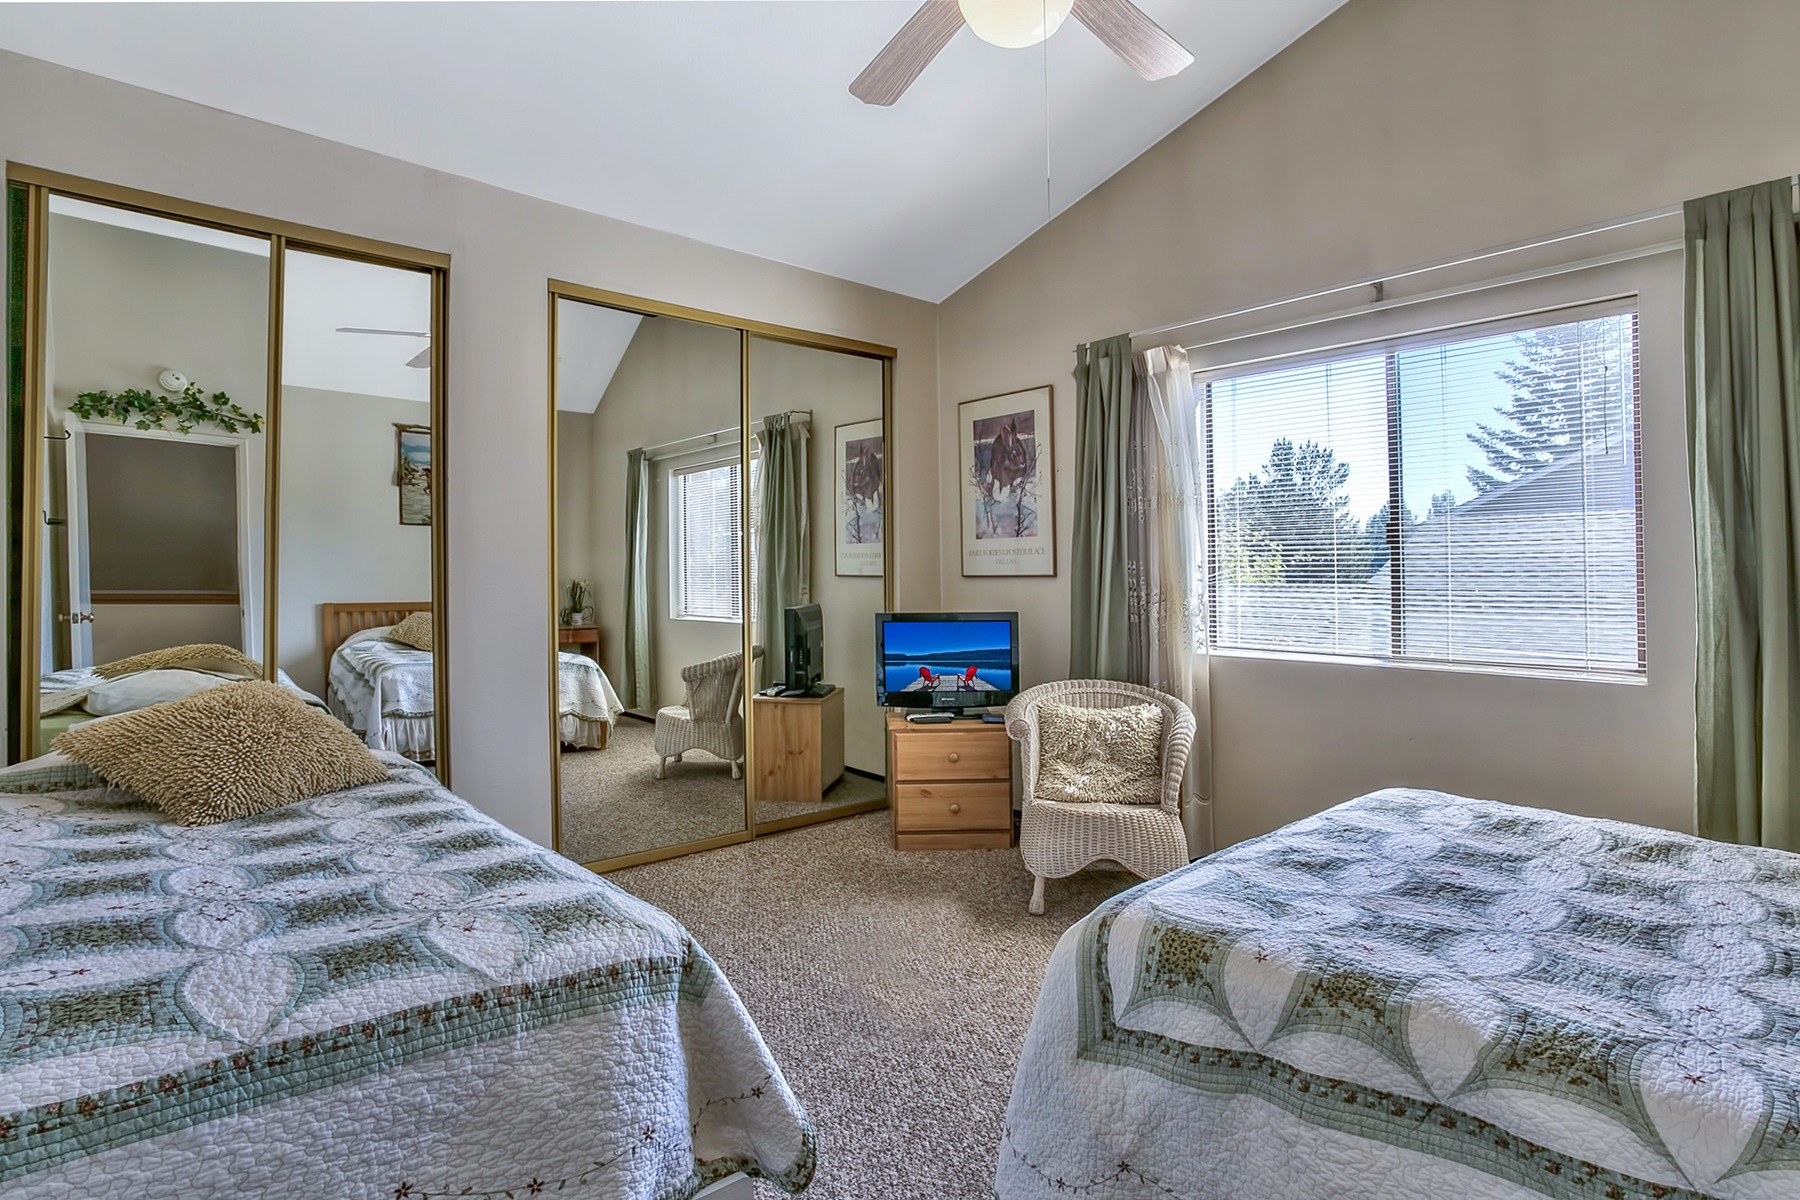 Additional photo for property listing at 2044 Venice Drive  South Lake Tahoe, California 96150 Estados Unidos